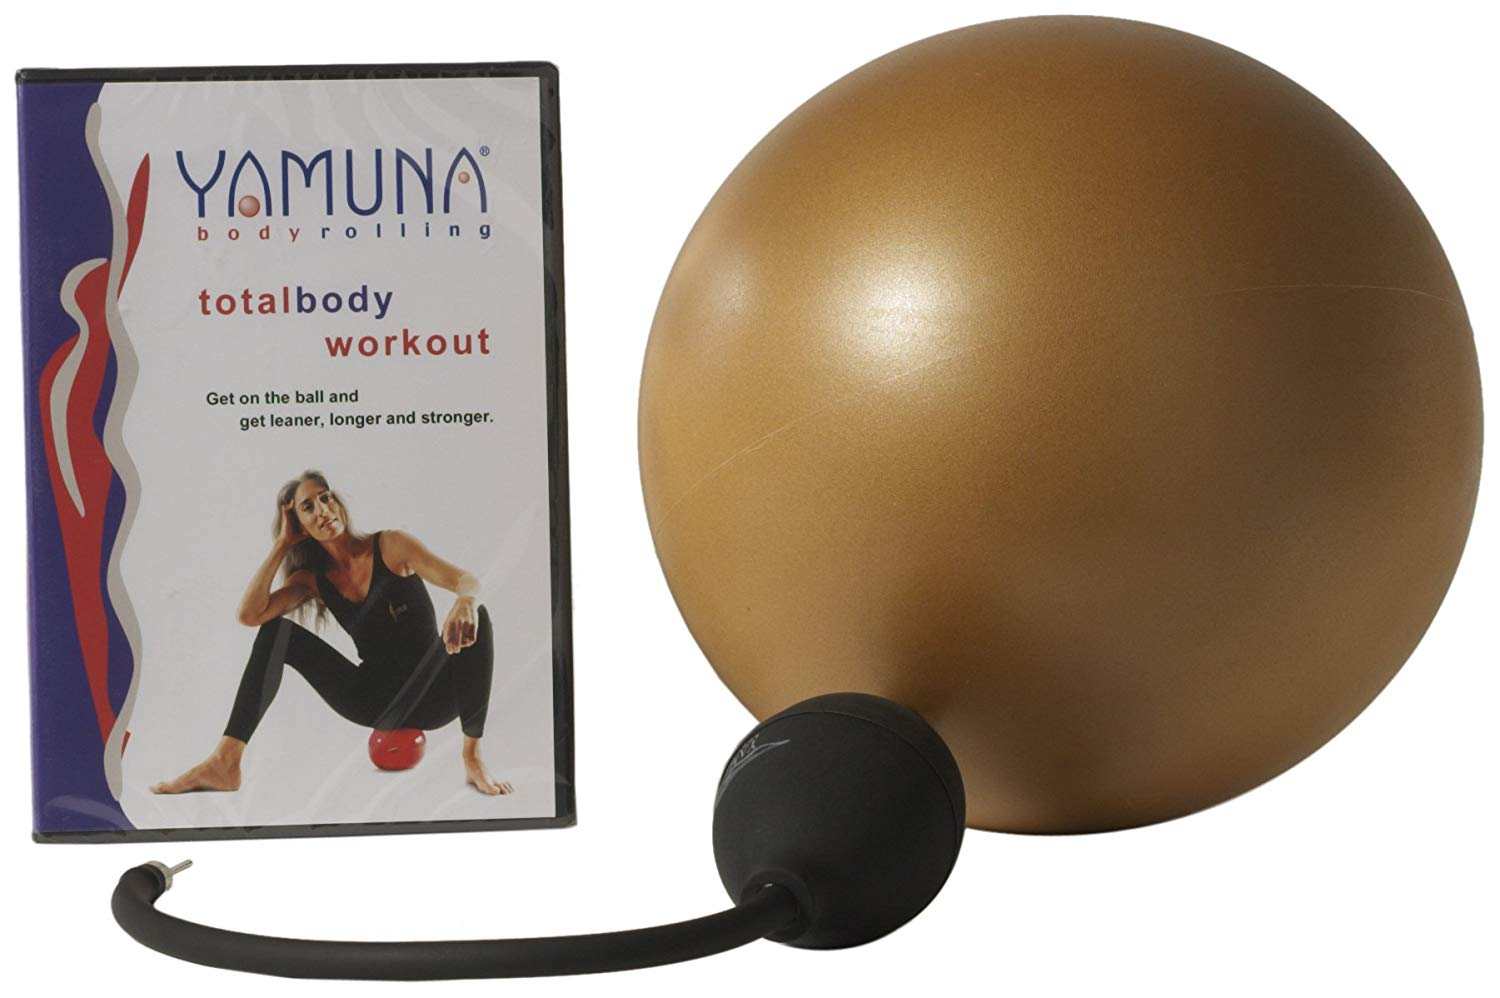 happy fascia & muscles - Yamuna beginner body rolling kit - This is all you need to get started with the amazing benefits of body rolling with the Yamuna method! Body rolling with an inflatable ball offers many advantages to foam rolling … It's more gentle and comfortable on the body, but goes just as deep. And because it's a sphere, you can roll every area of your body (while foam rolling is more limited). This intro DVD is the perfect introduction, with Yamuna herself! Comes with a pump, which you can use for any smaller balls you purchase (there are many sizes- this beginner one being the largest)!